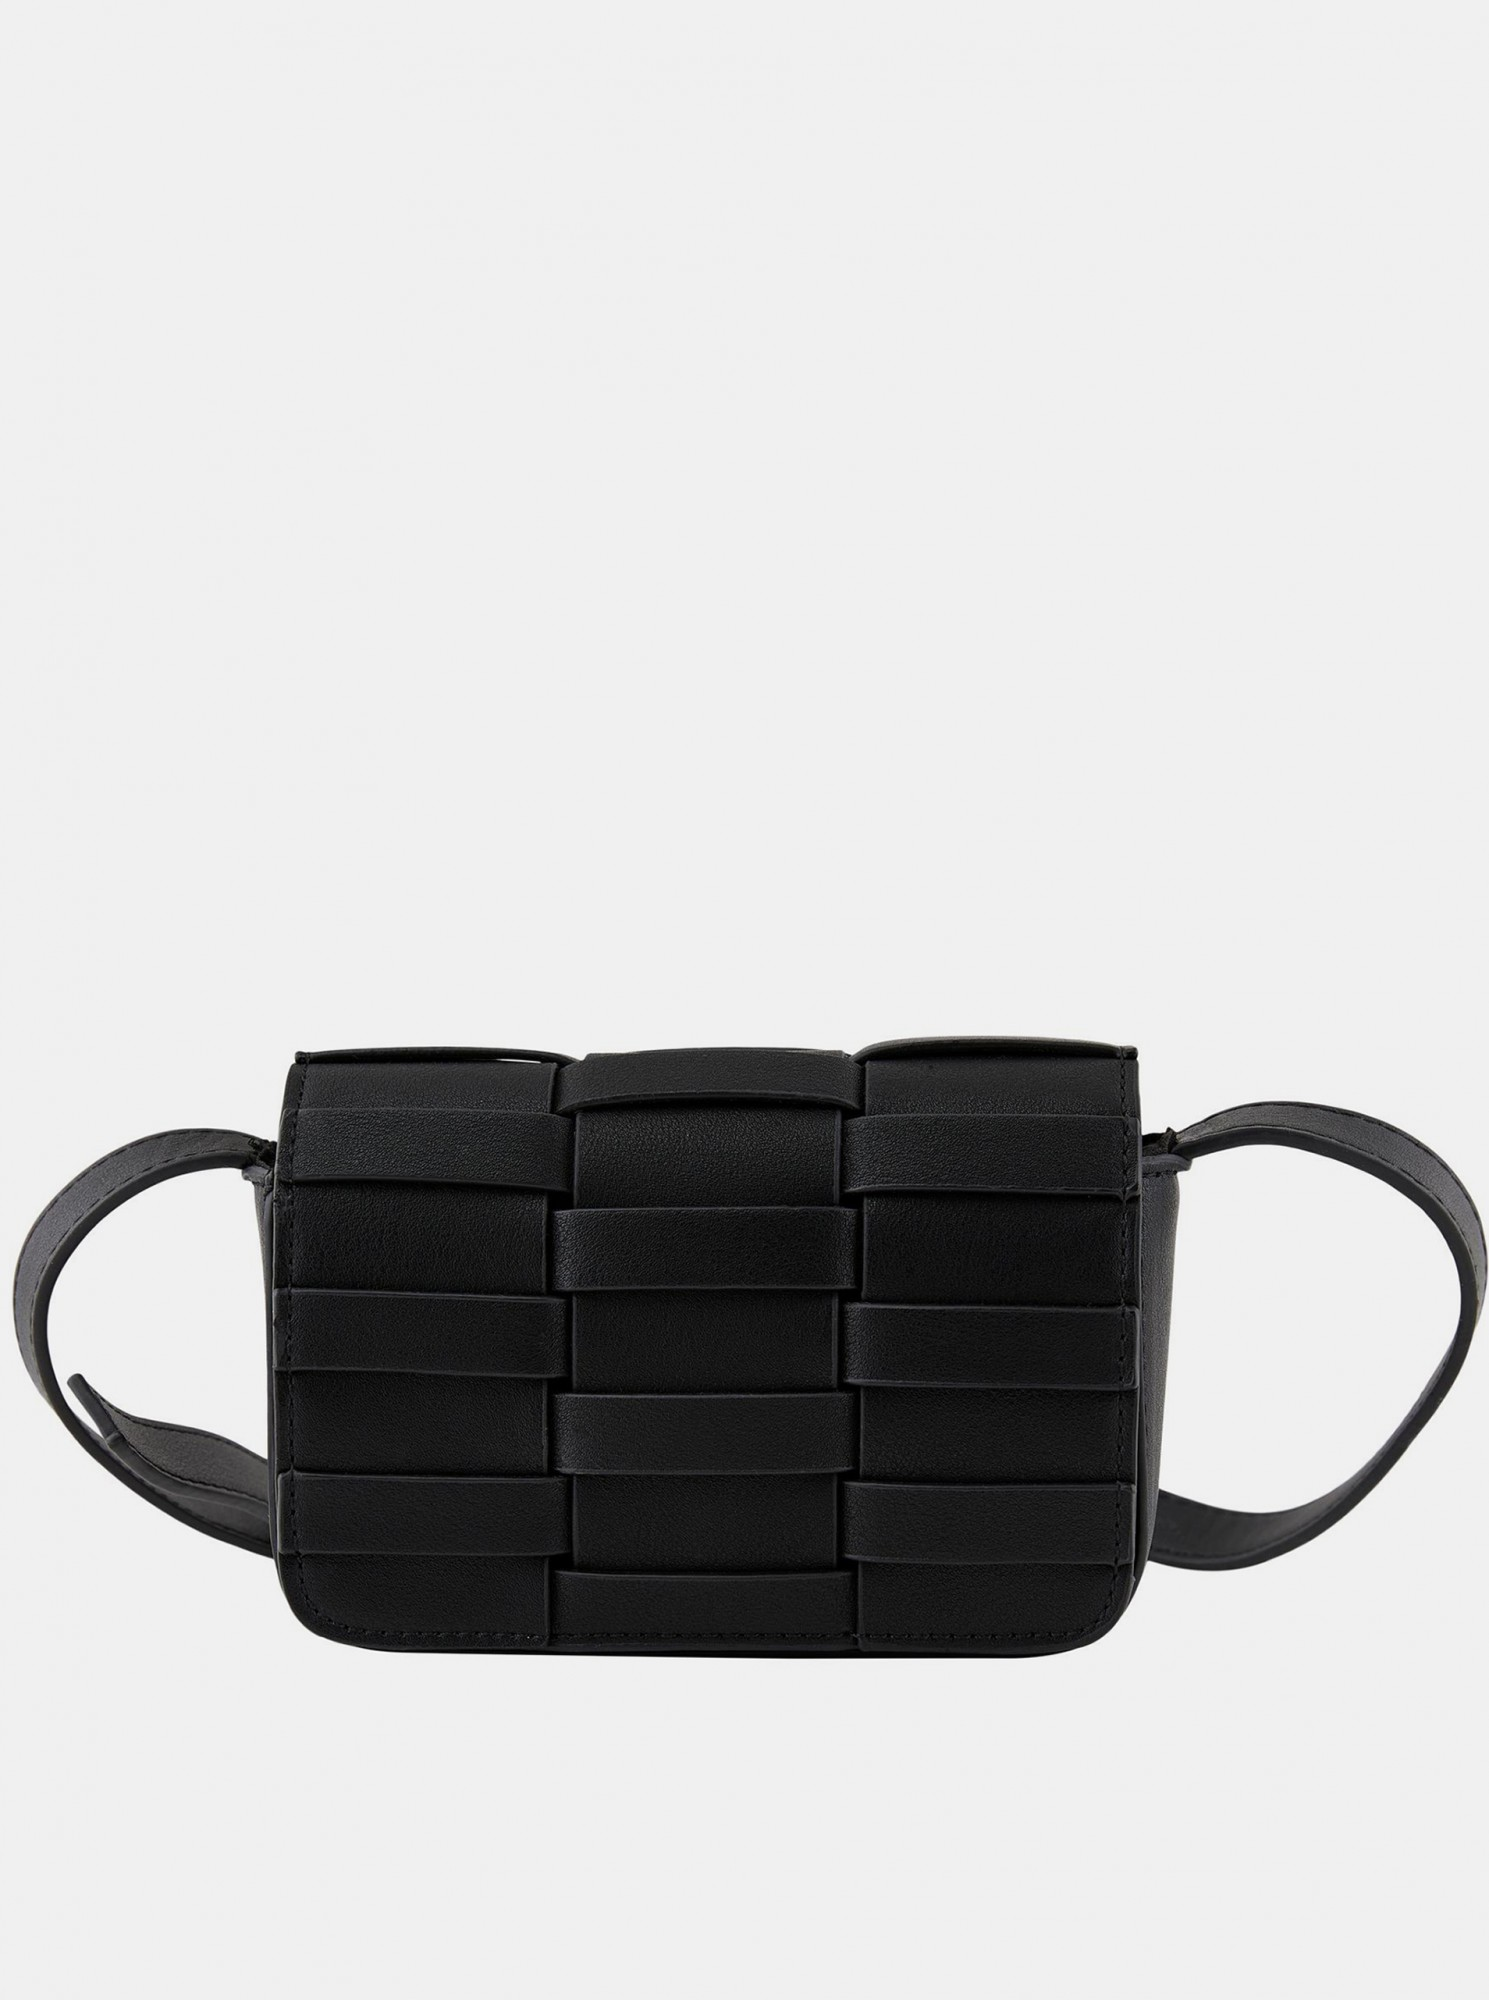 Pieces crna crossbody torbica